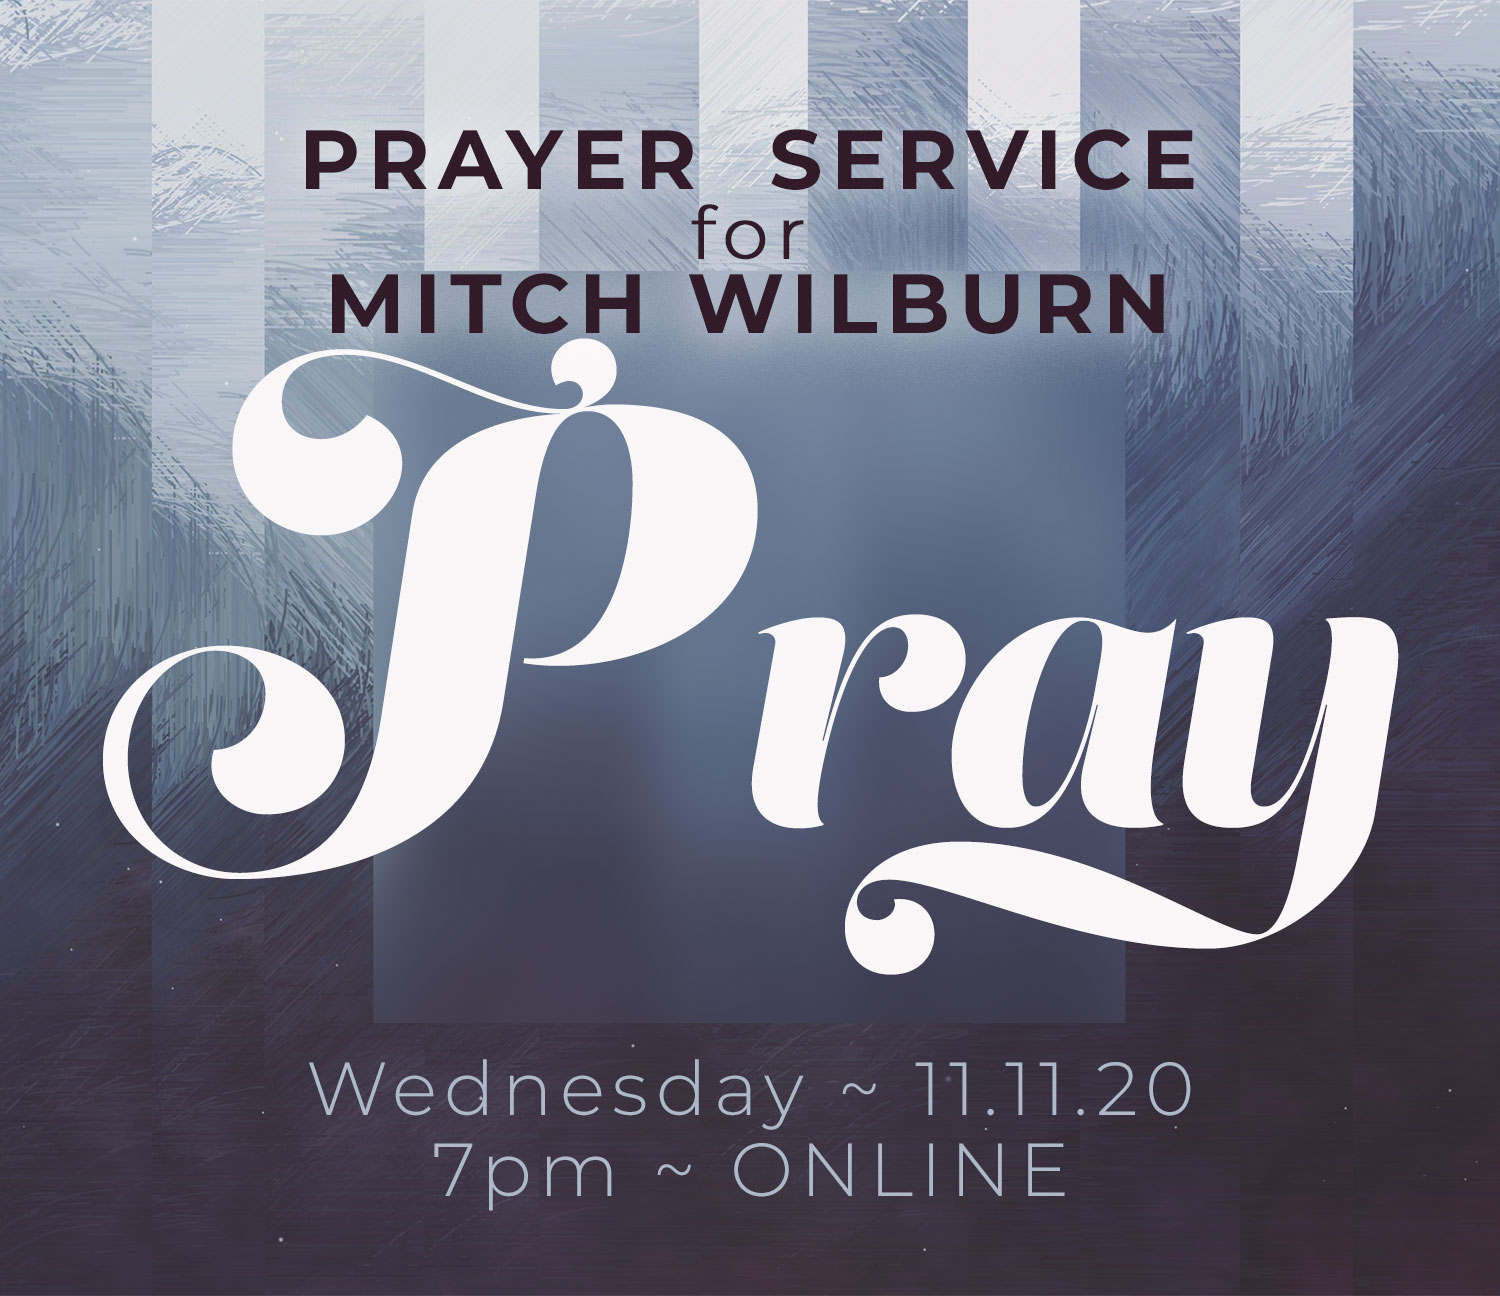 Prayer Service For Mitch Wilburn